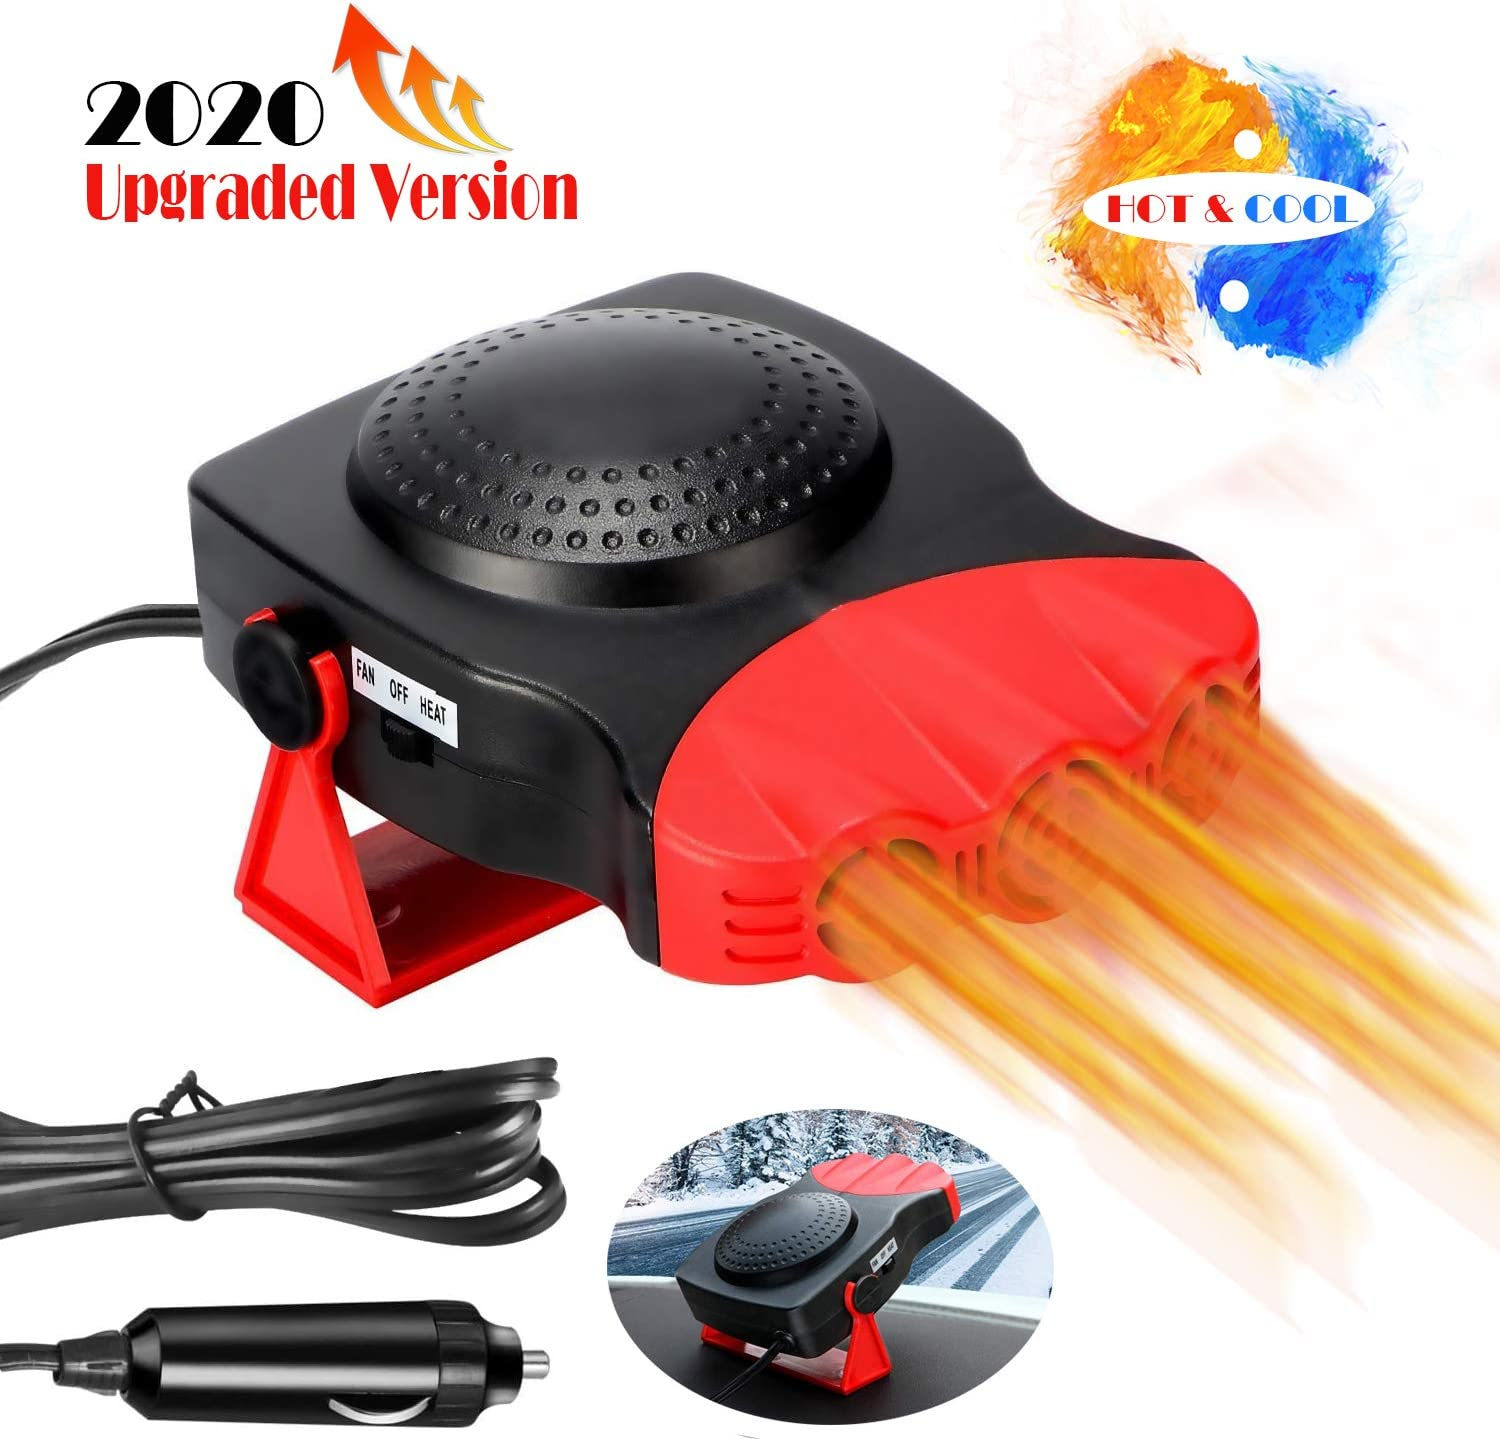 Red Car Heater Portable Fan Heater /& Cooler Windshield Quick Defroster Defogger 12V 150W 2-in-1 Heating//Cooling Function 3 Outlet Car Heater Red